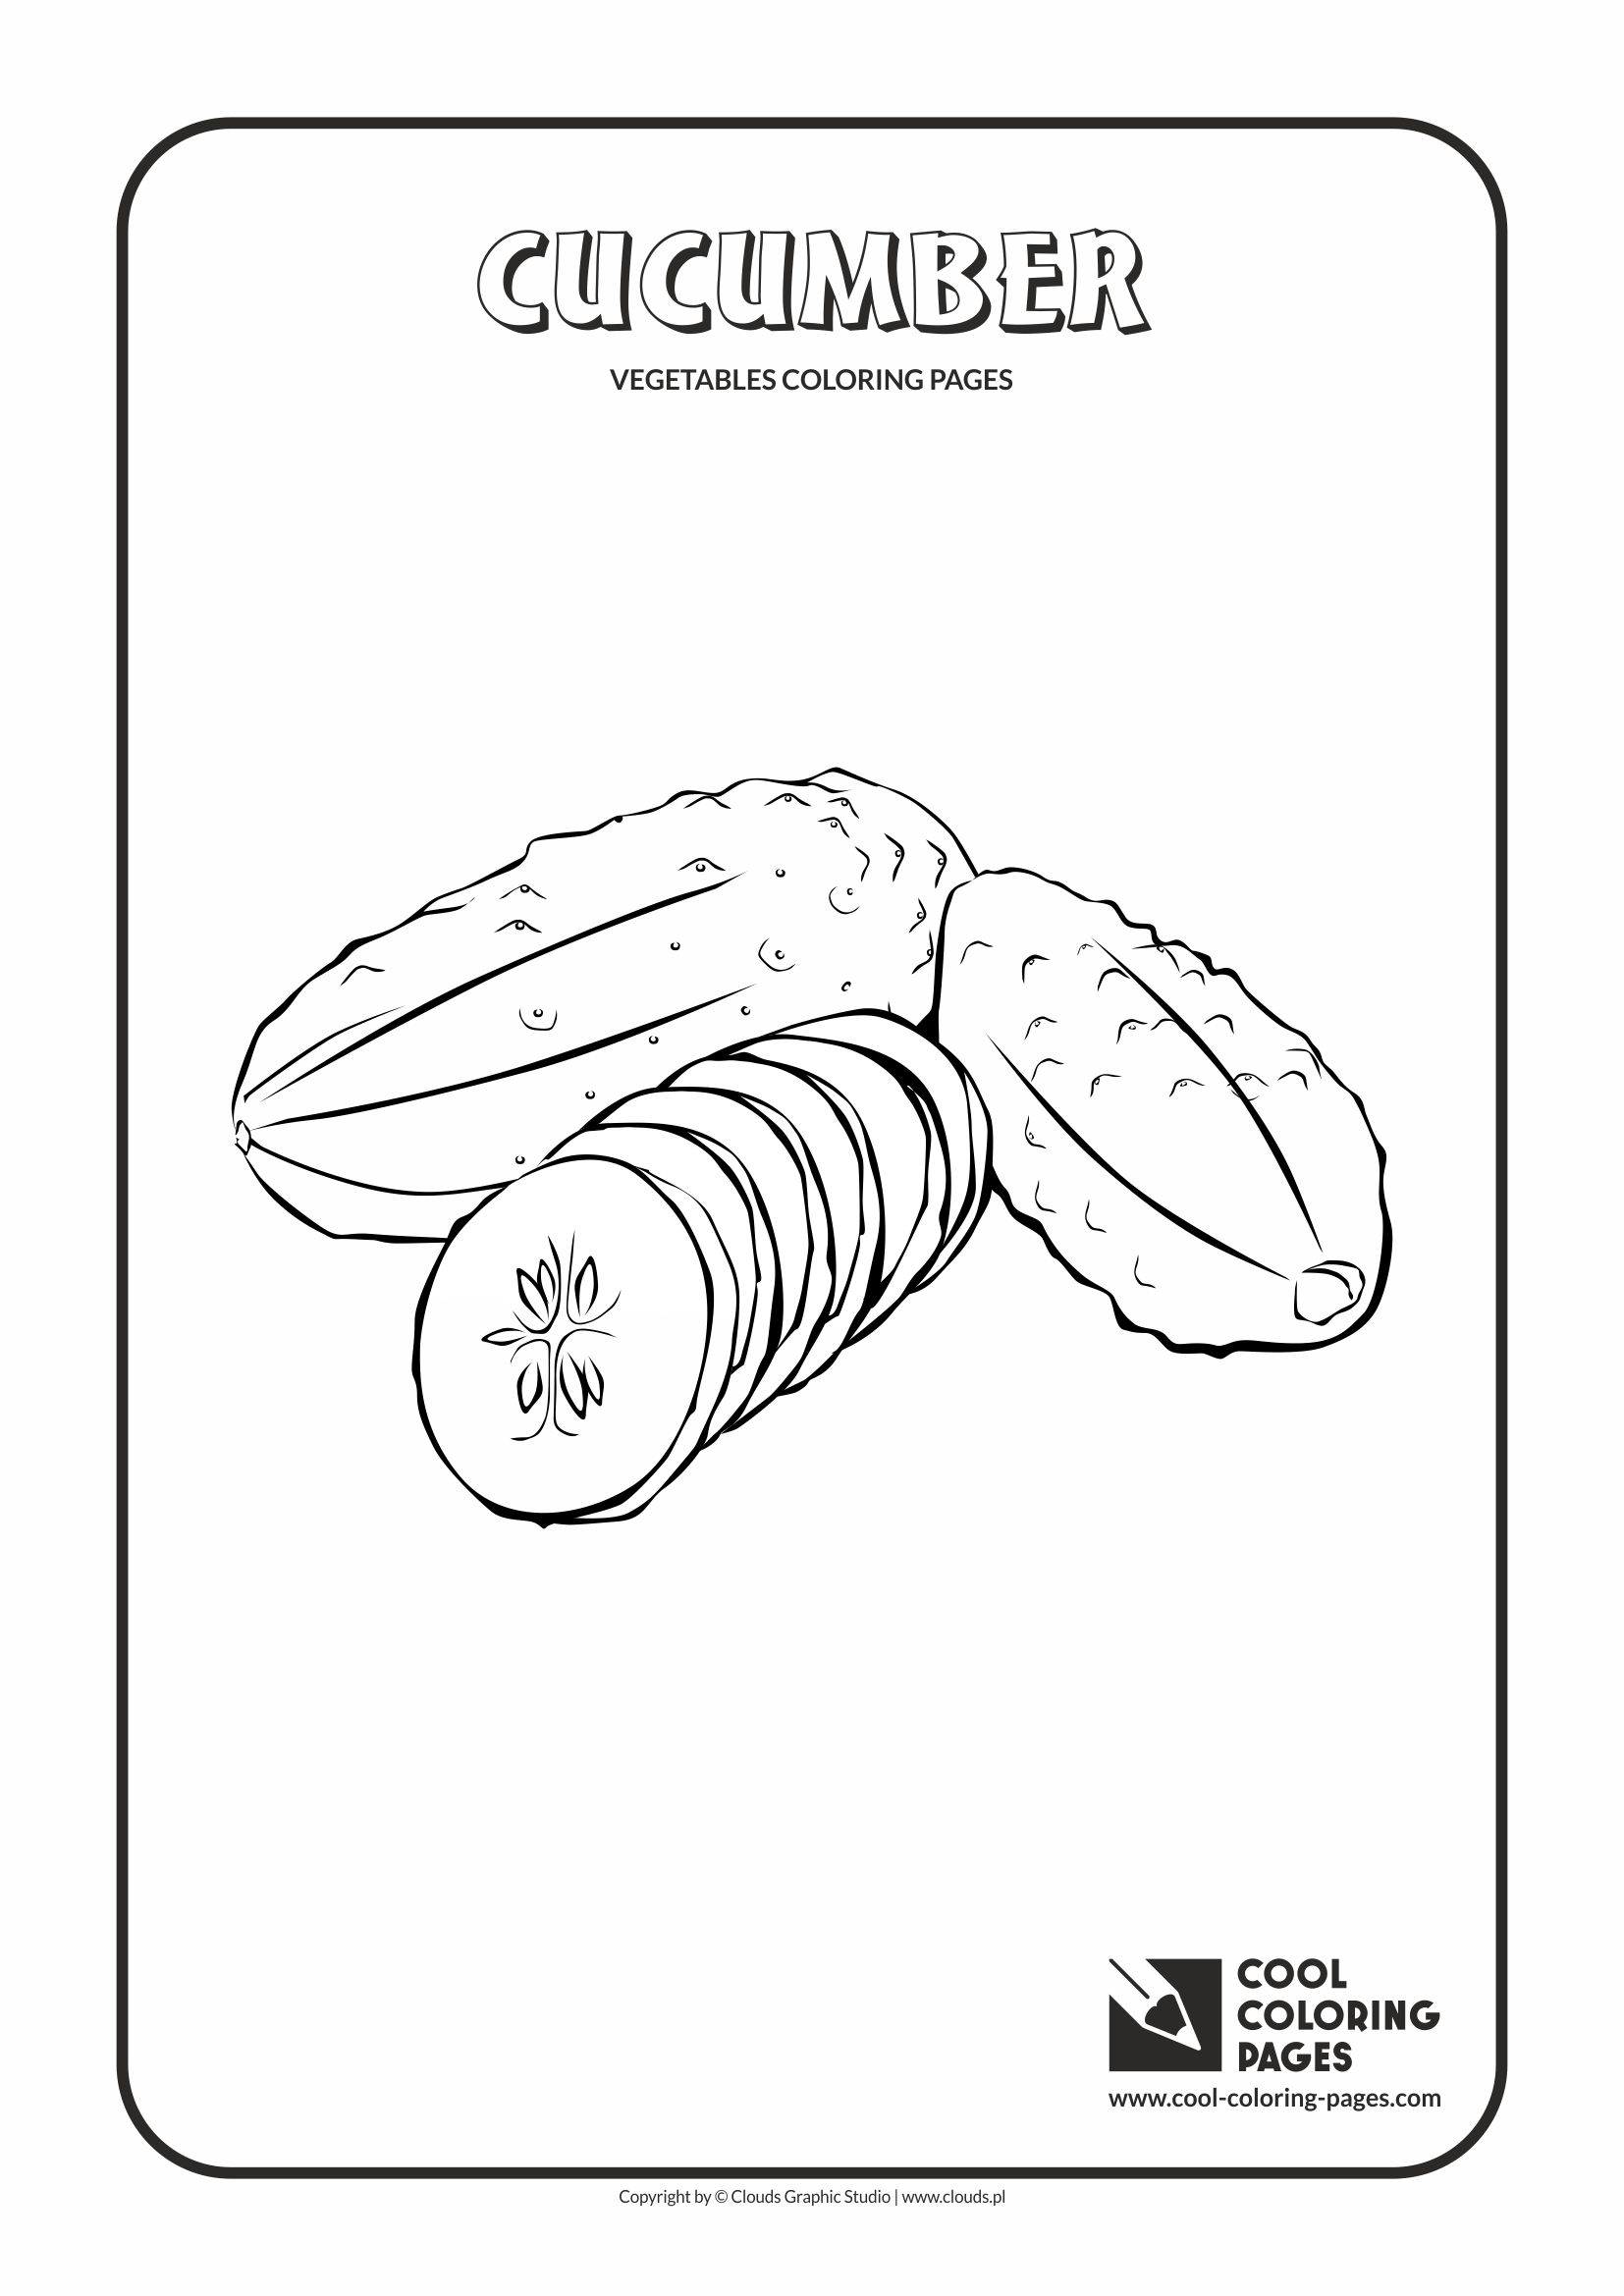 Cool Coloring Pages - Plants / Cucumber / Coloring page with cucumber